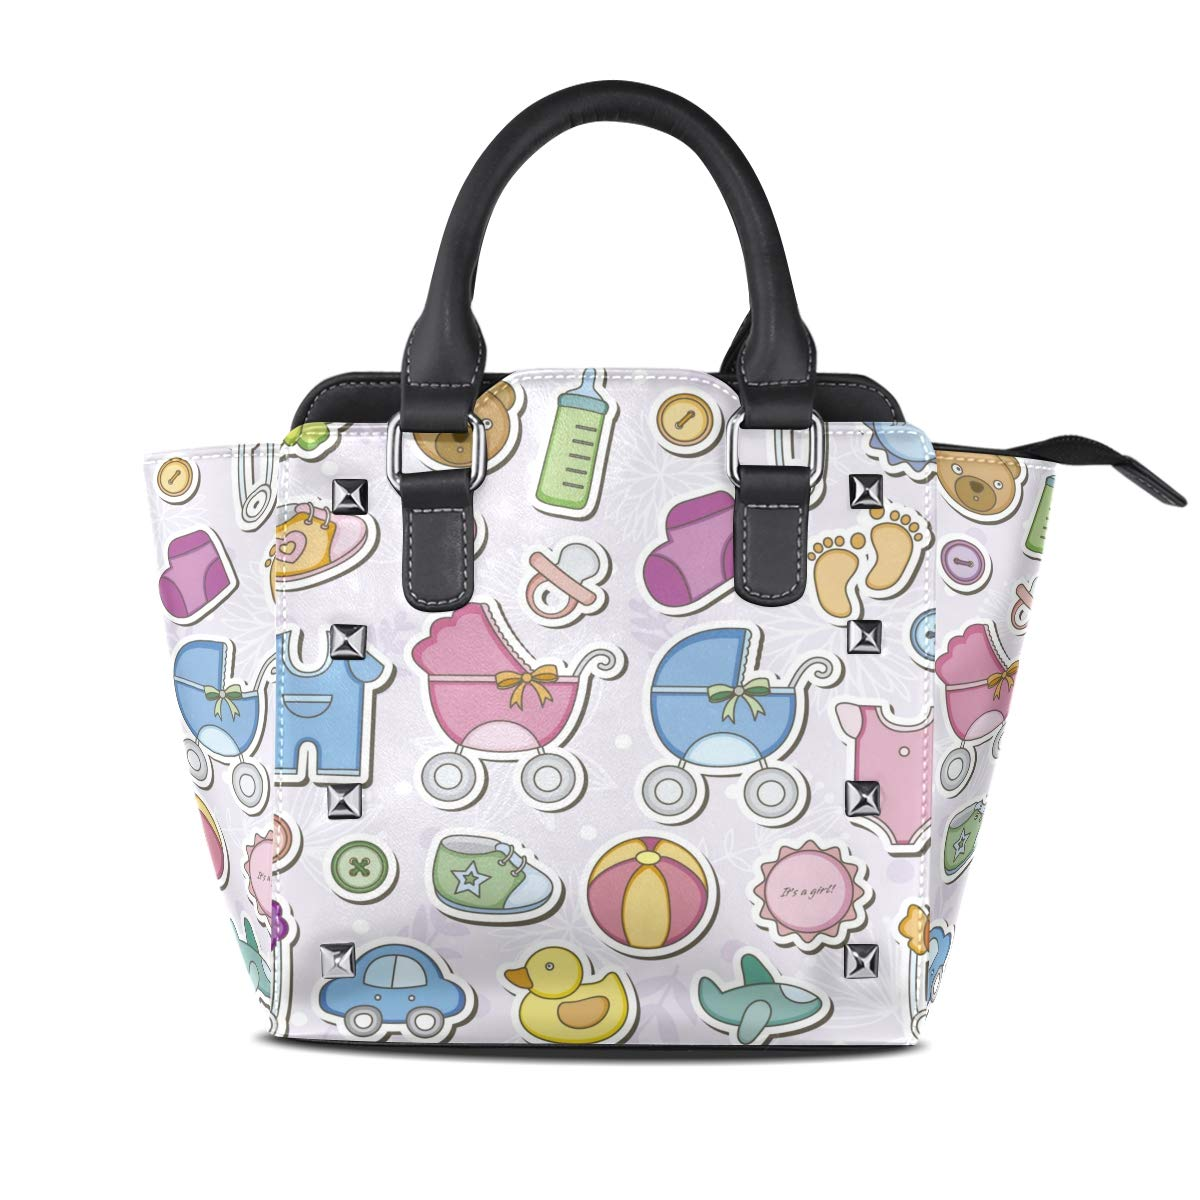 Design5 Emoji Smile Top Handle Satchel Handbags Leather Tote Adjustable Shoulder Rivet Bag for Women